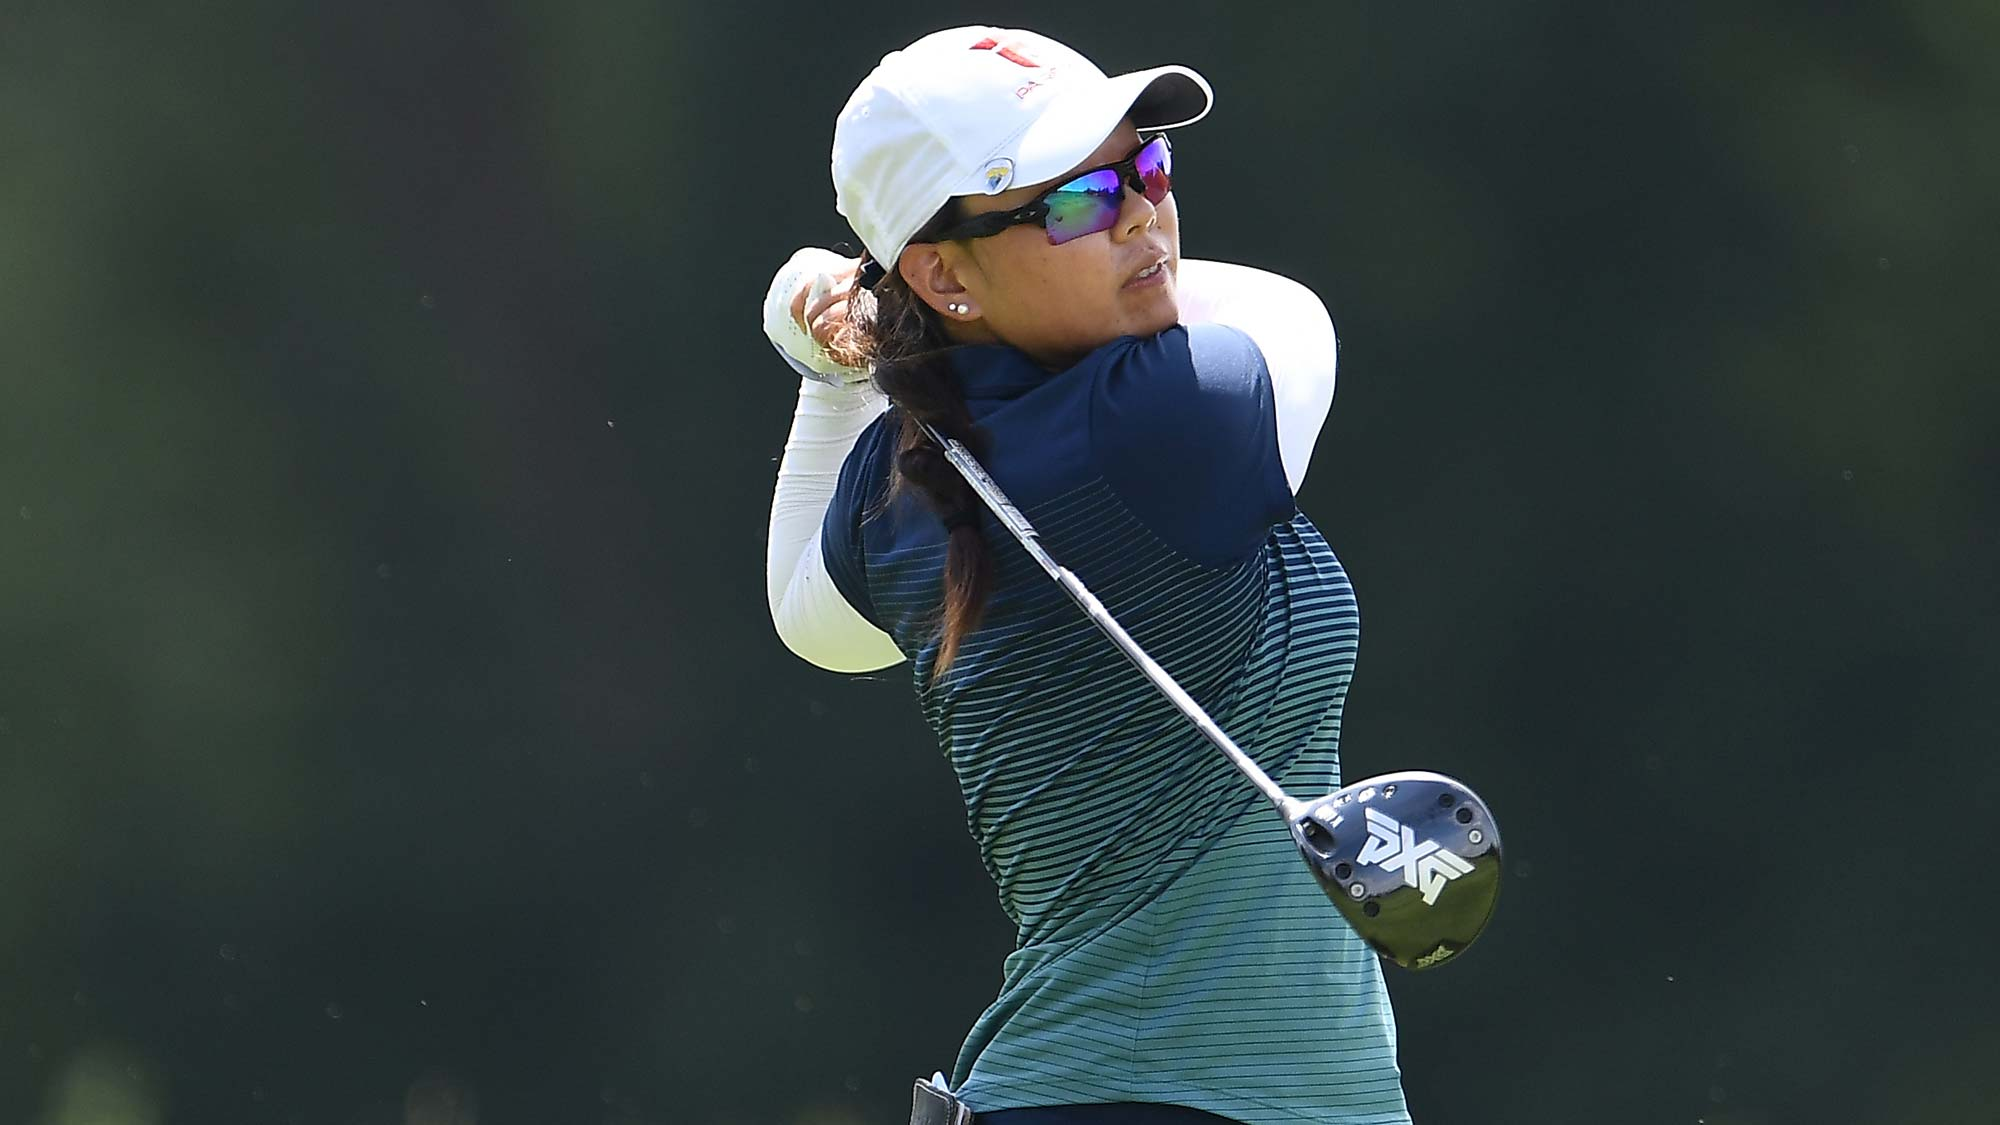 Mina Harigae hits her tee shot on the 13th hole during the second round of the Thornberry Creek LPGA Classic